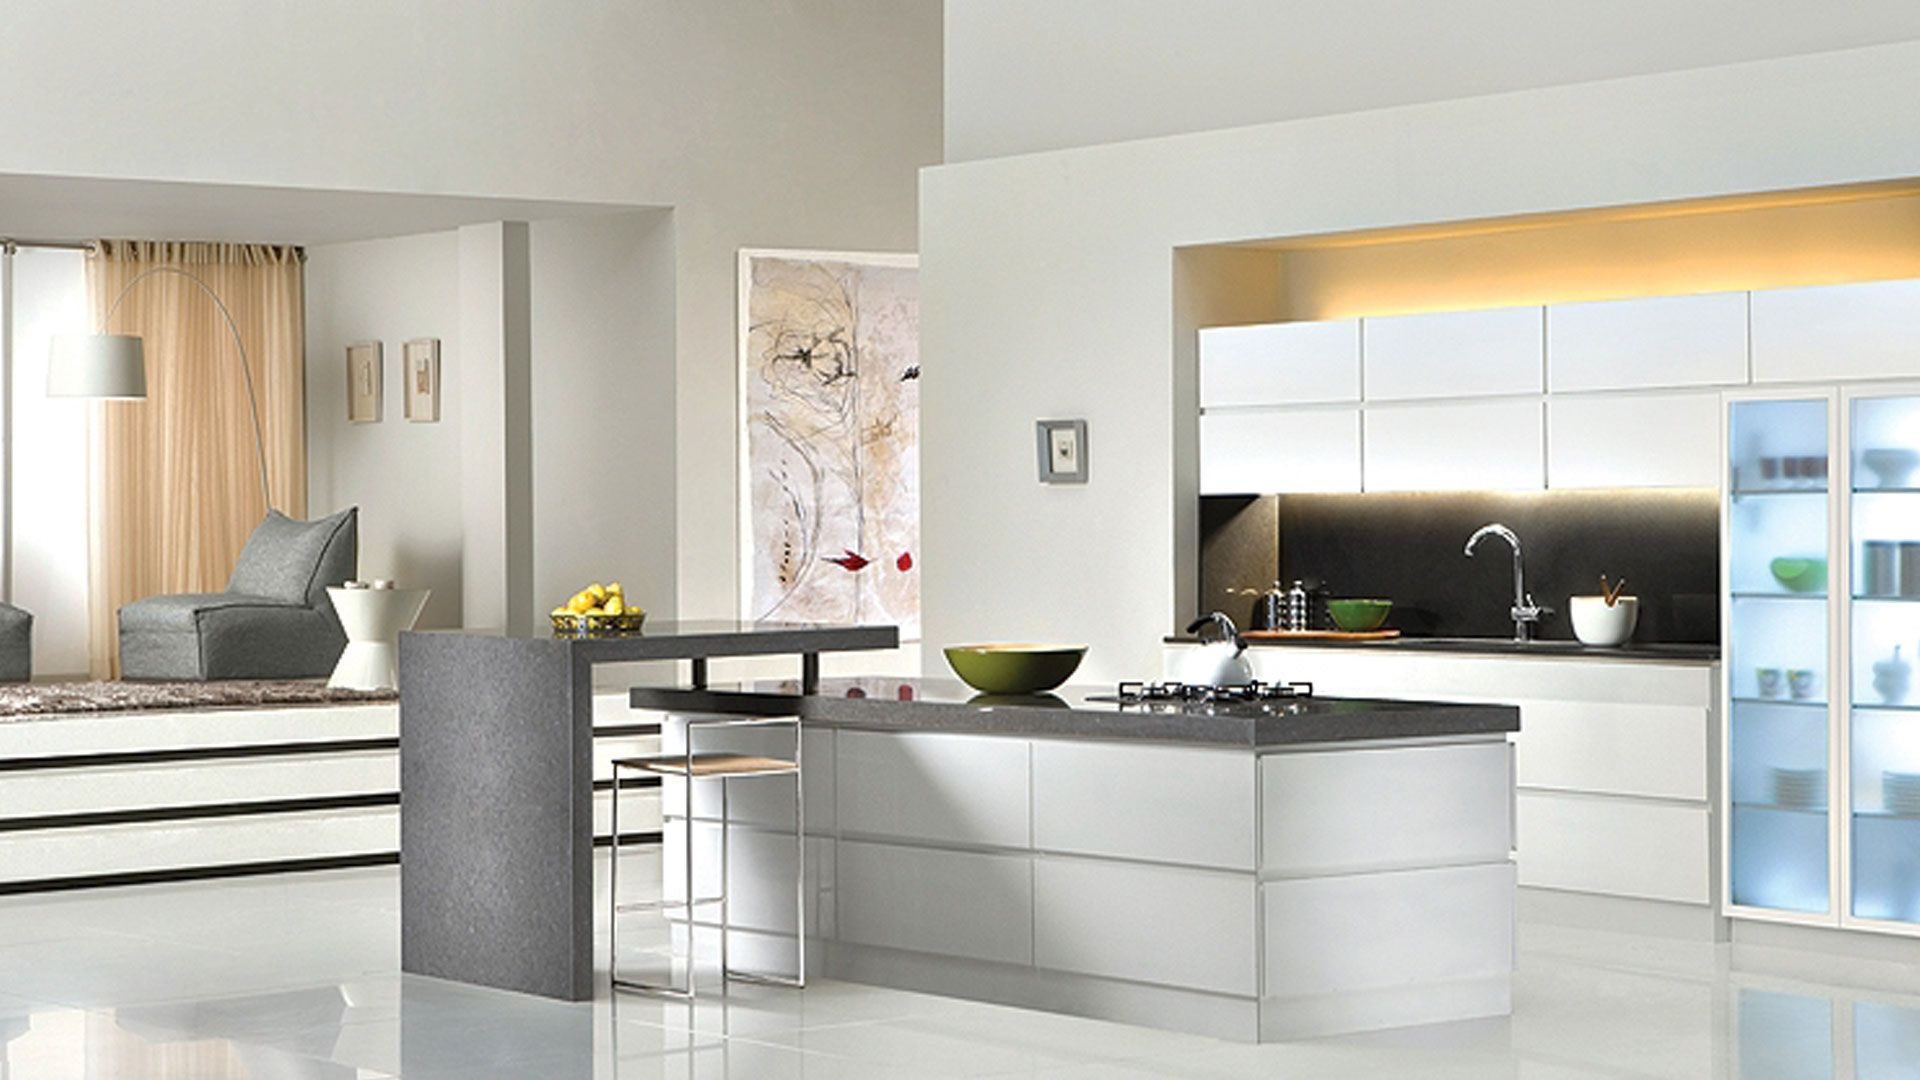 Kitchens | Categories | Crystal Cabinets | Amazing Kitchens ...